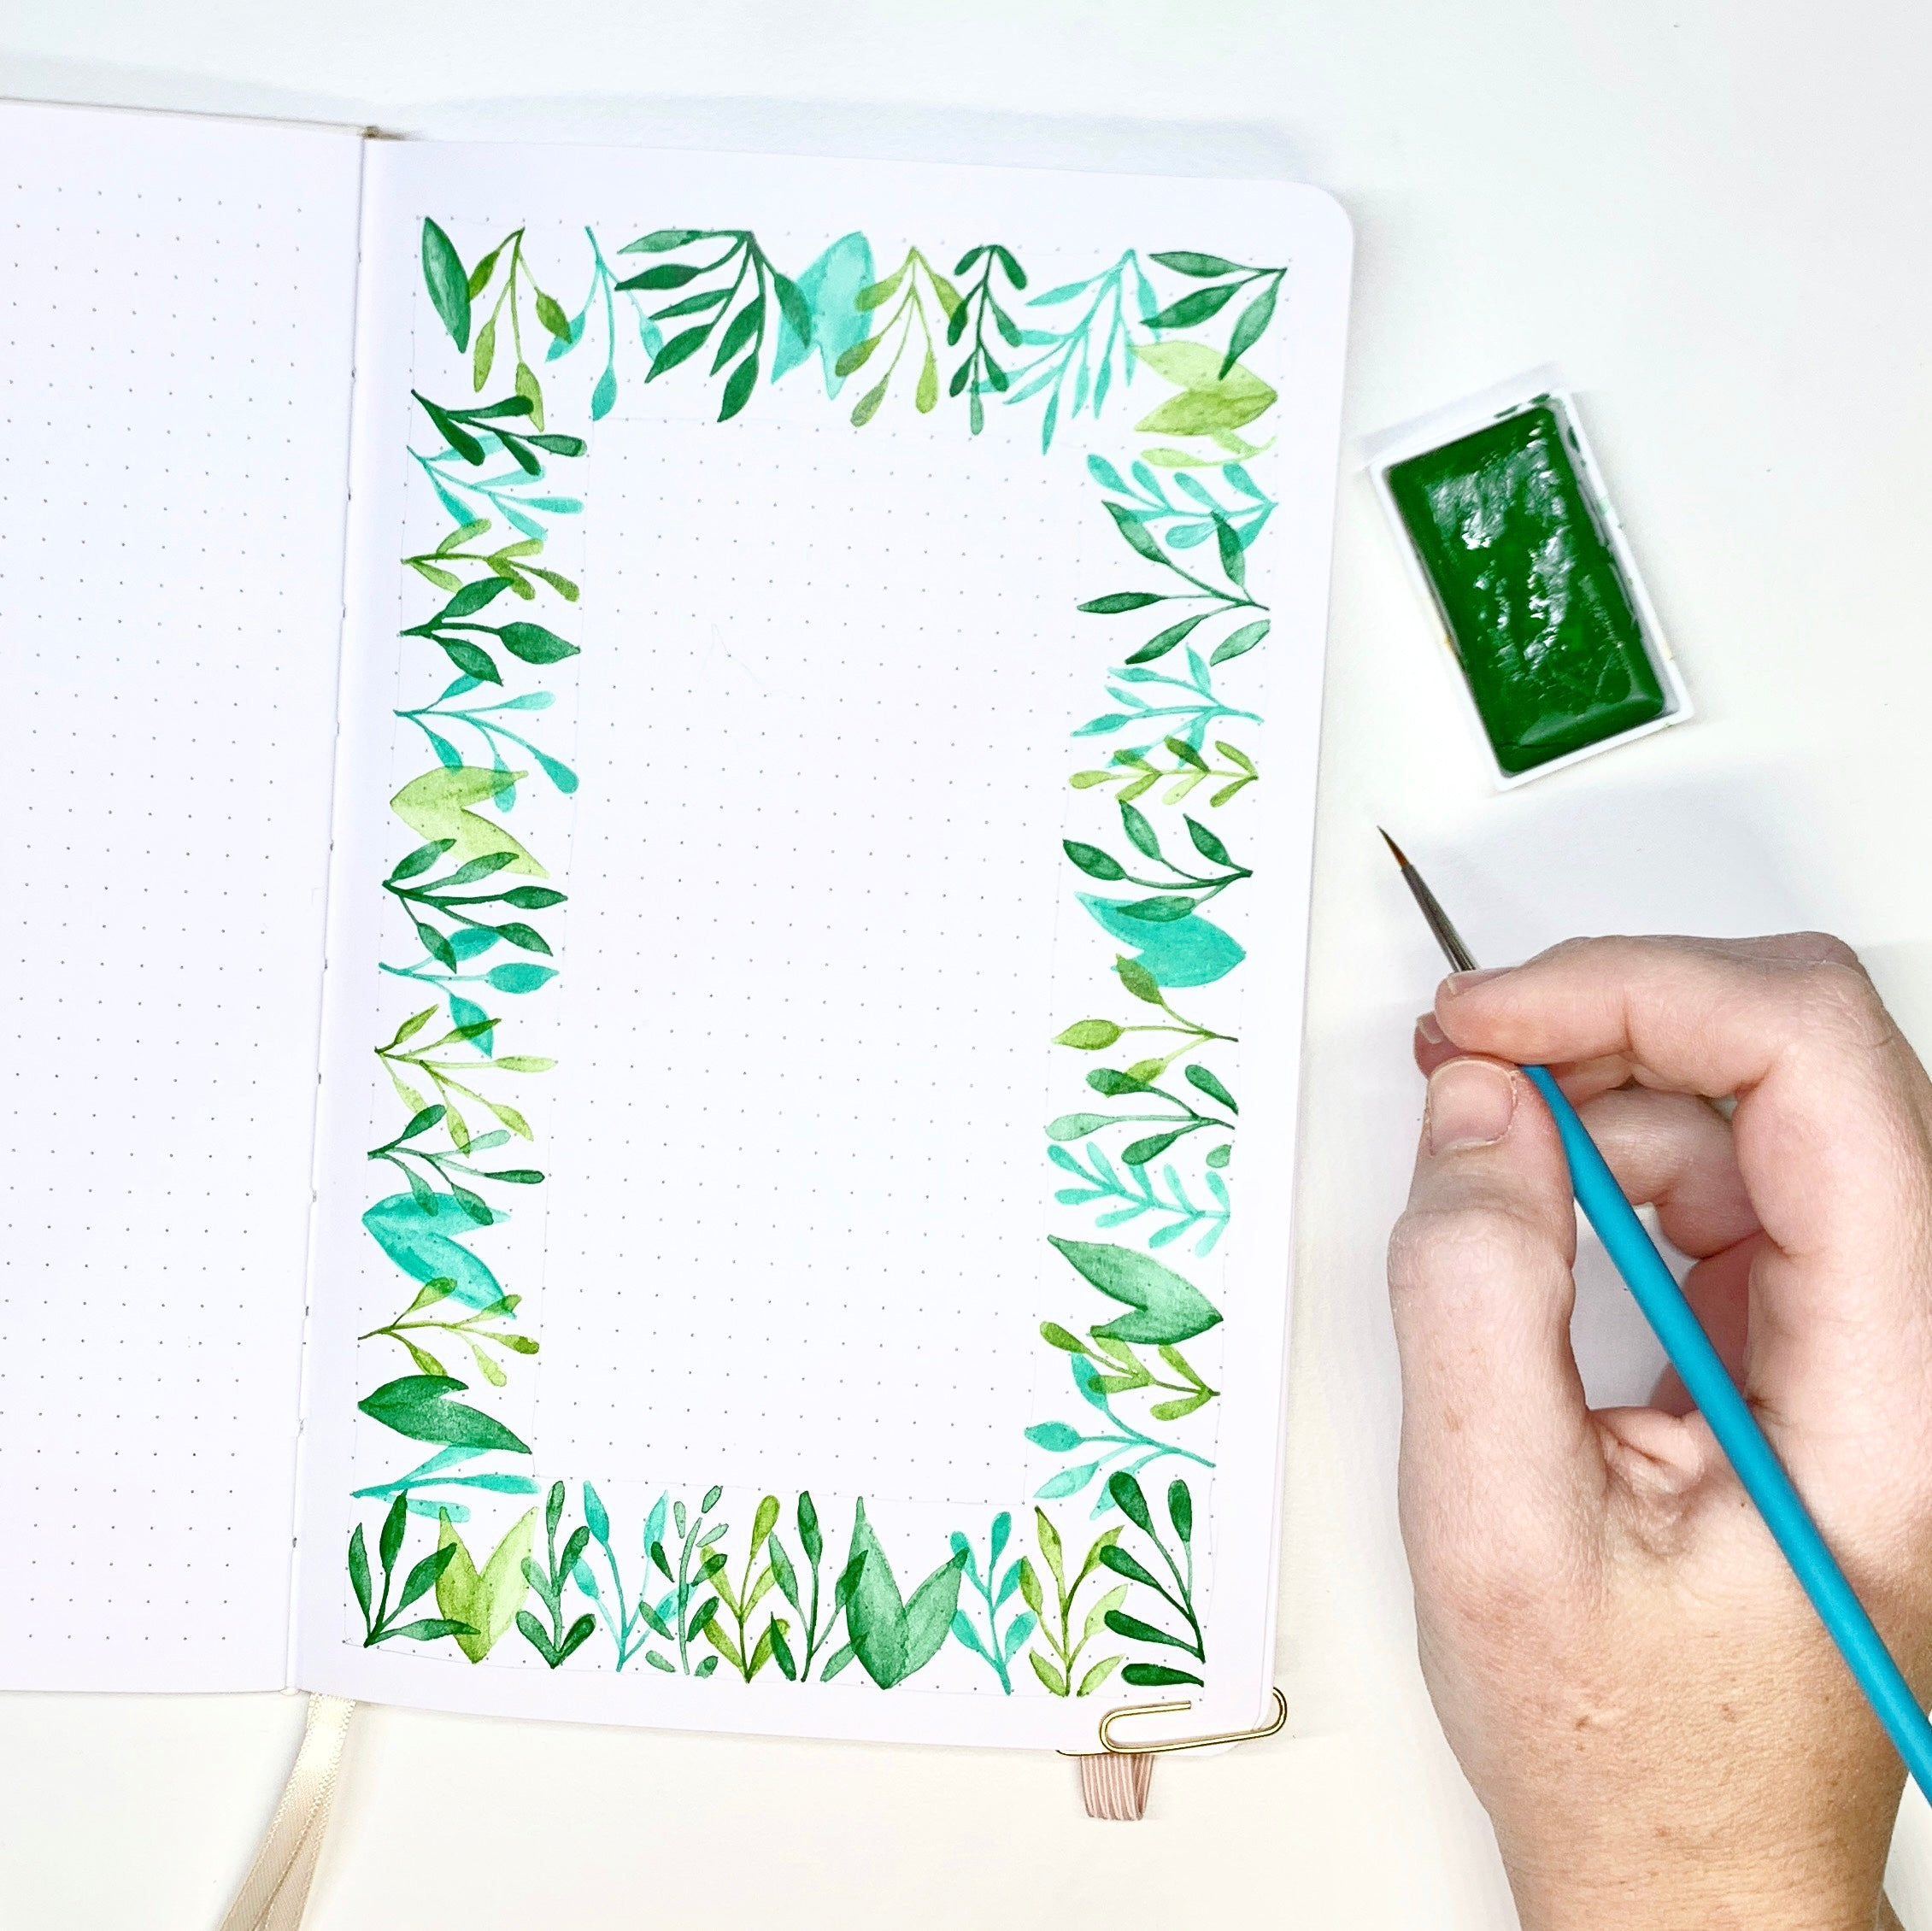 Create a mixed media leaf border